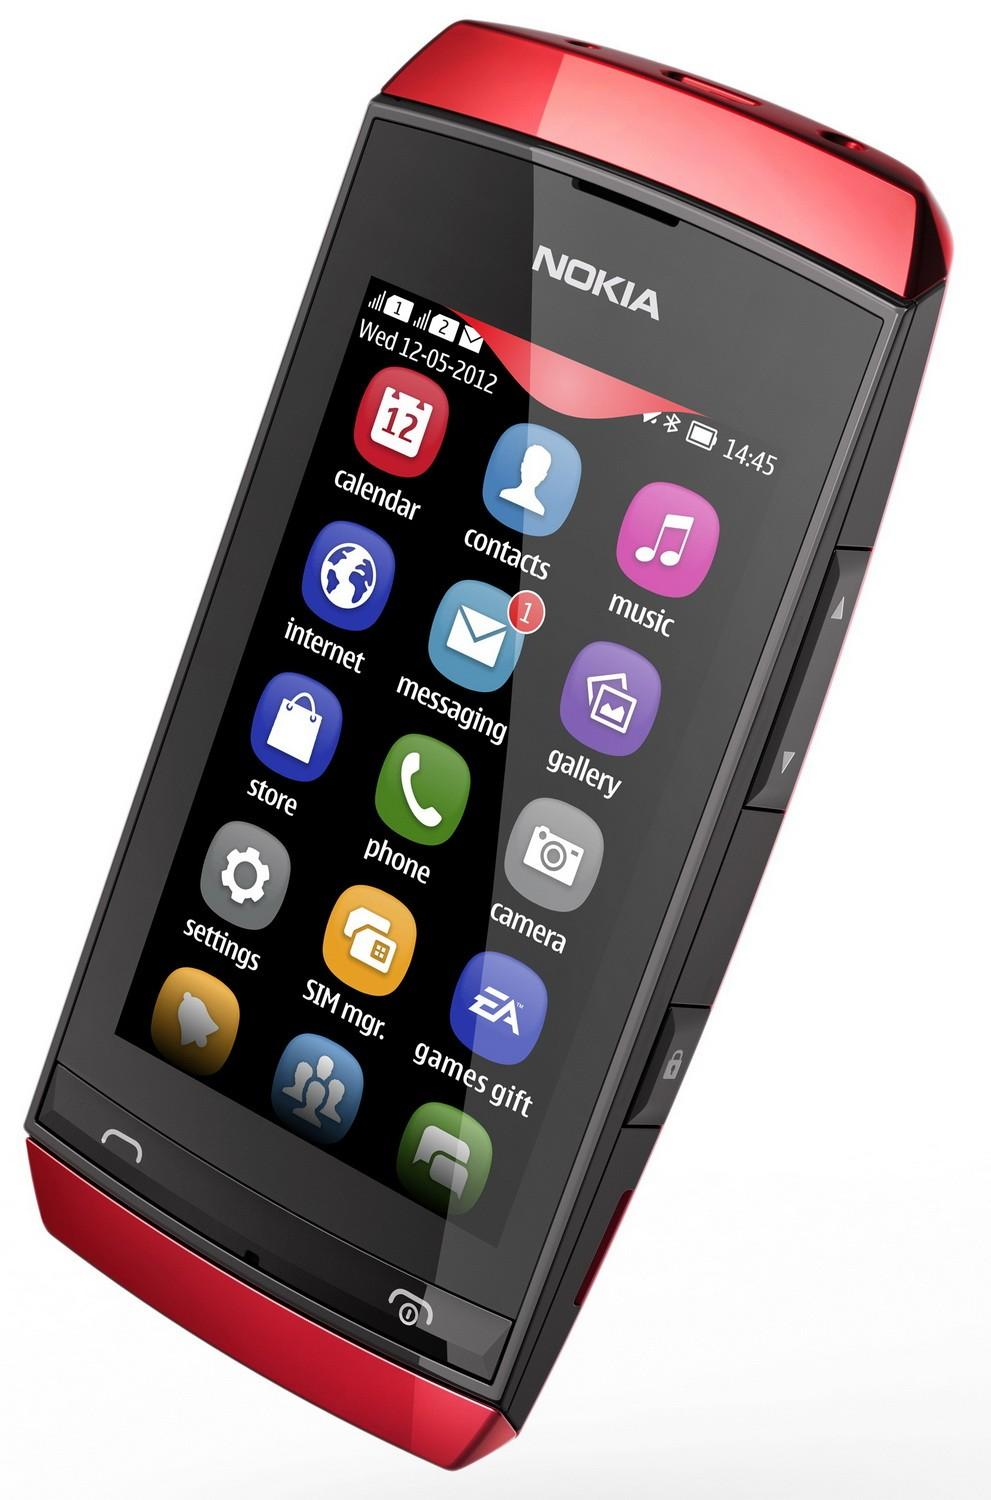 Nokia asha mobile photo